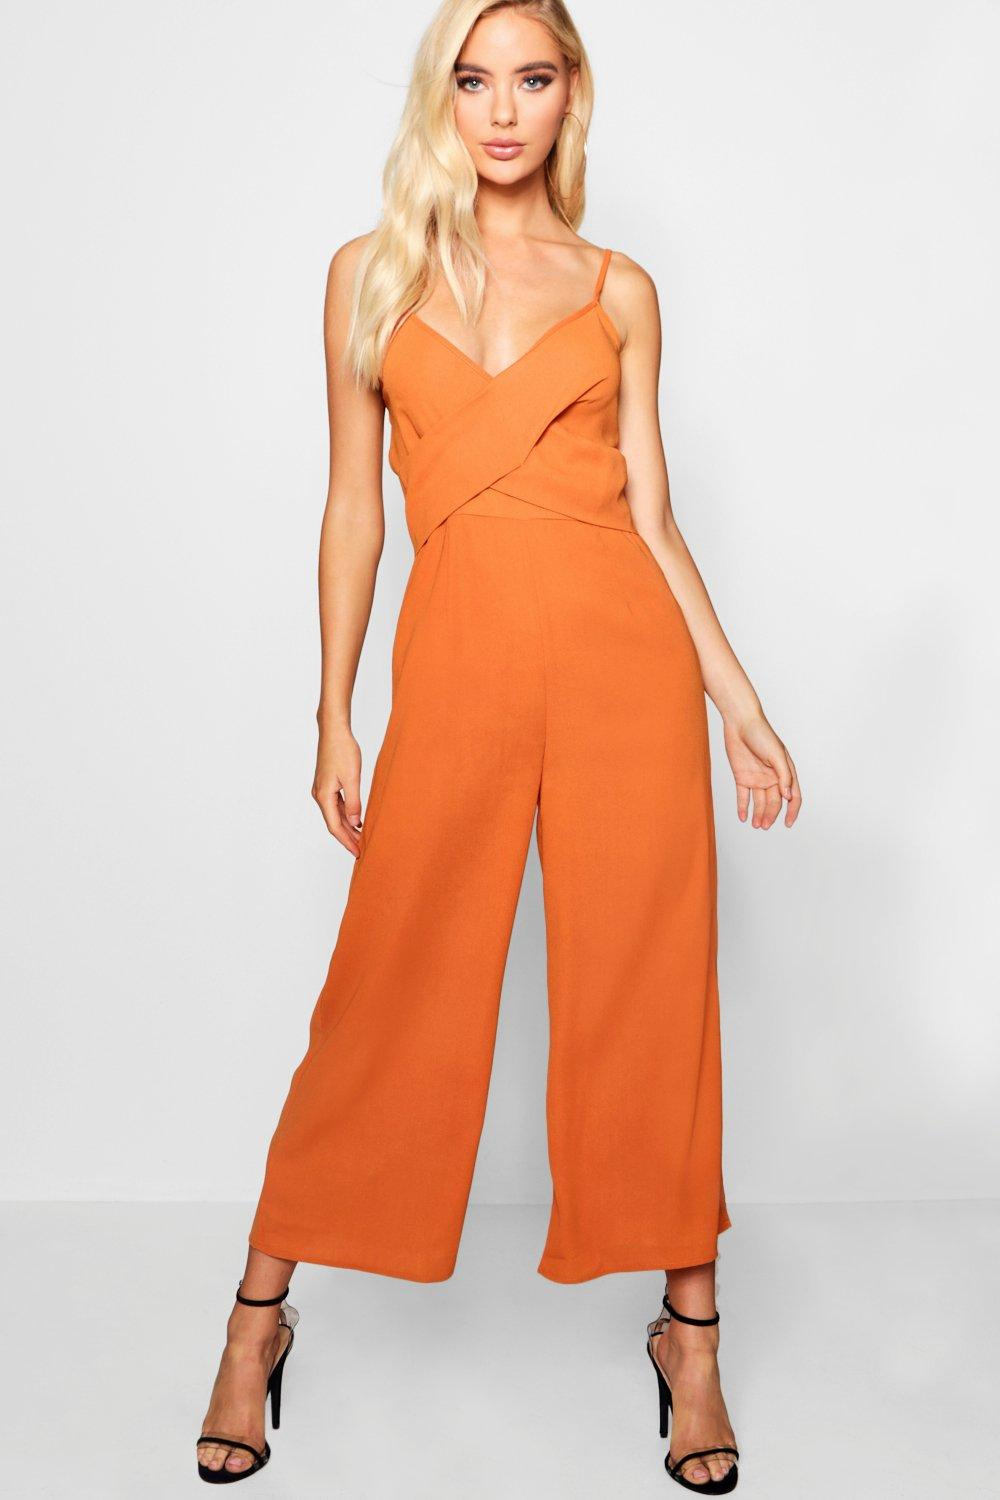 ac22914ce6 Strappy Twist Detail Culotte Jumpsuit. Hover to zoom